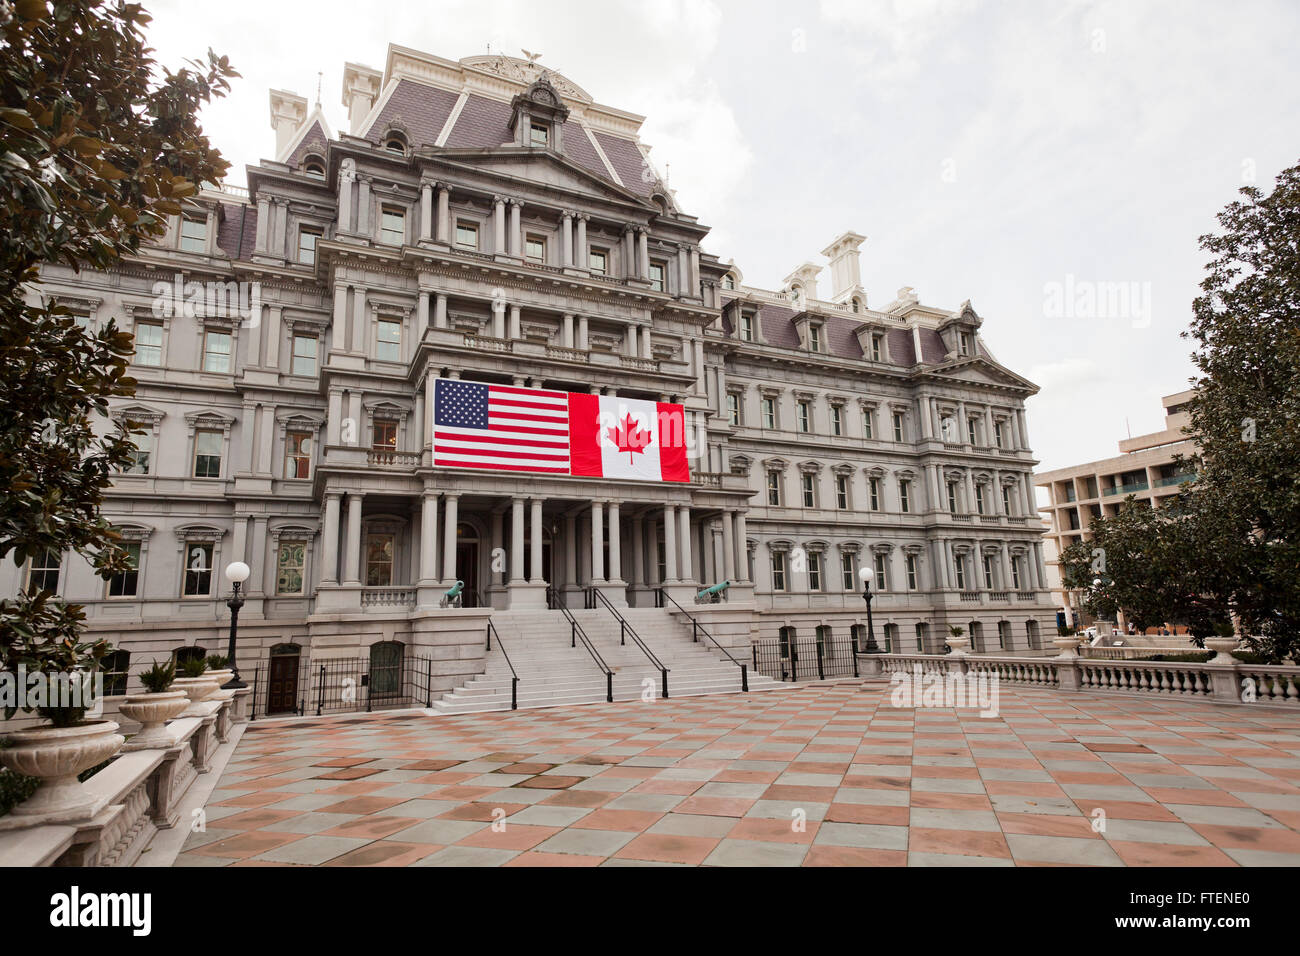 US / Canada flags hung on The Eisenhower Old Executive Offices building - Washington, DC USA - Stock Image